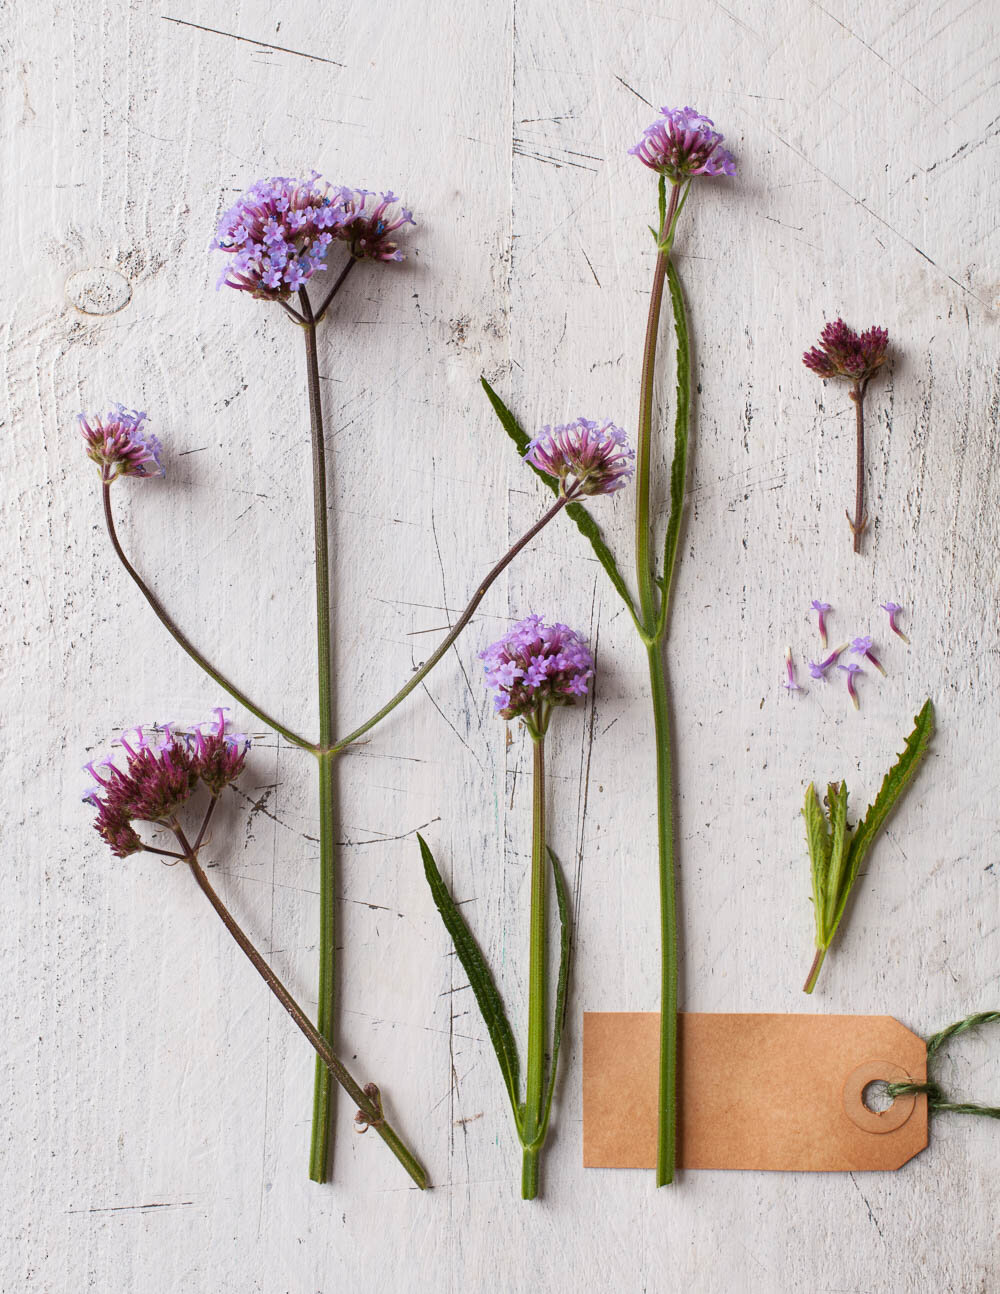 Photograph of purple verbena flowers on a painted wood background